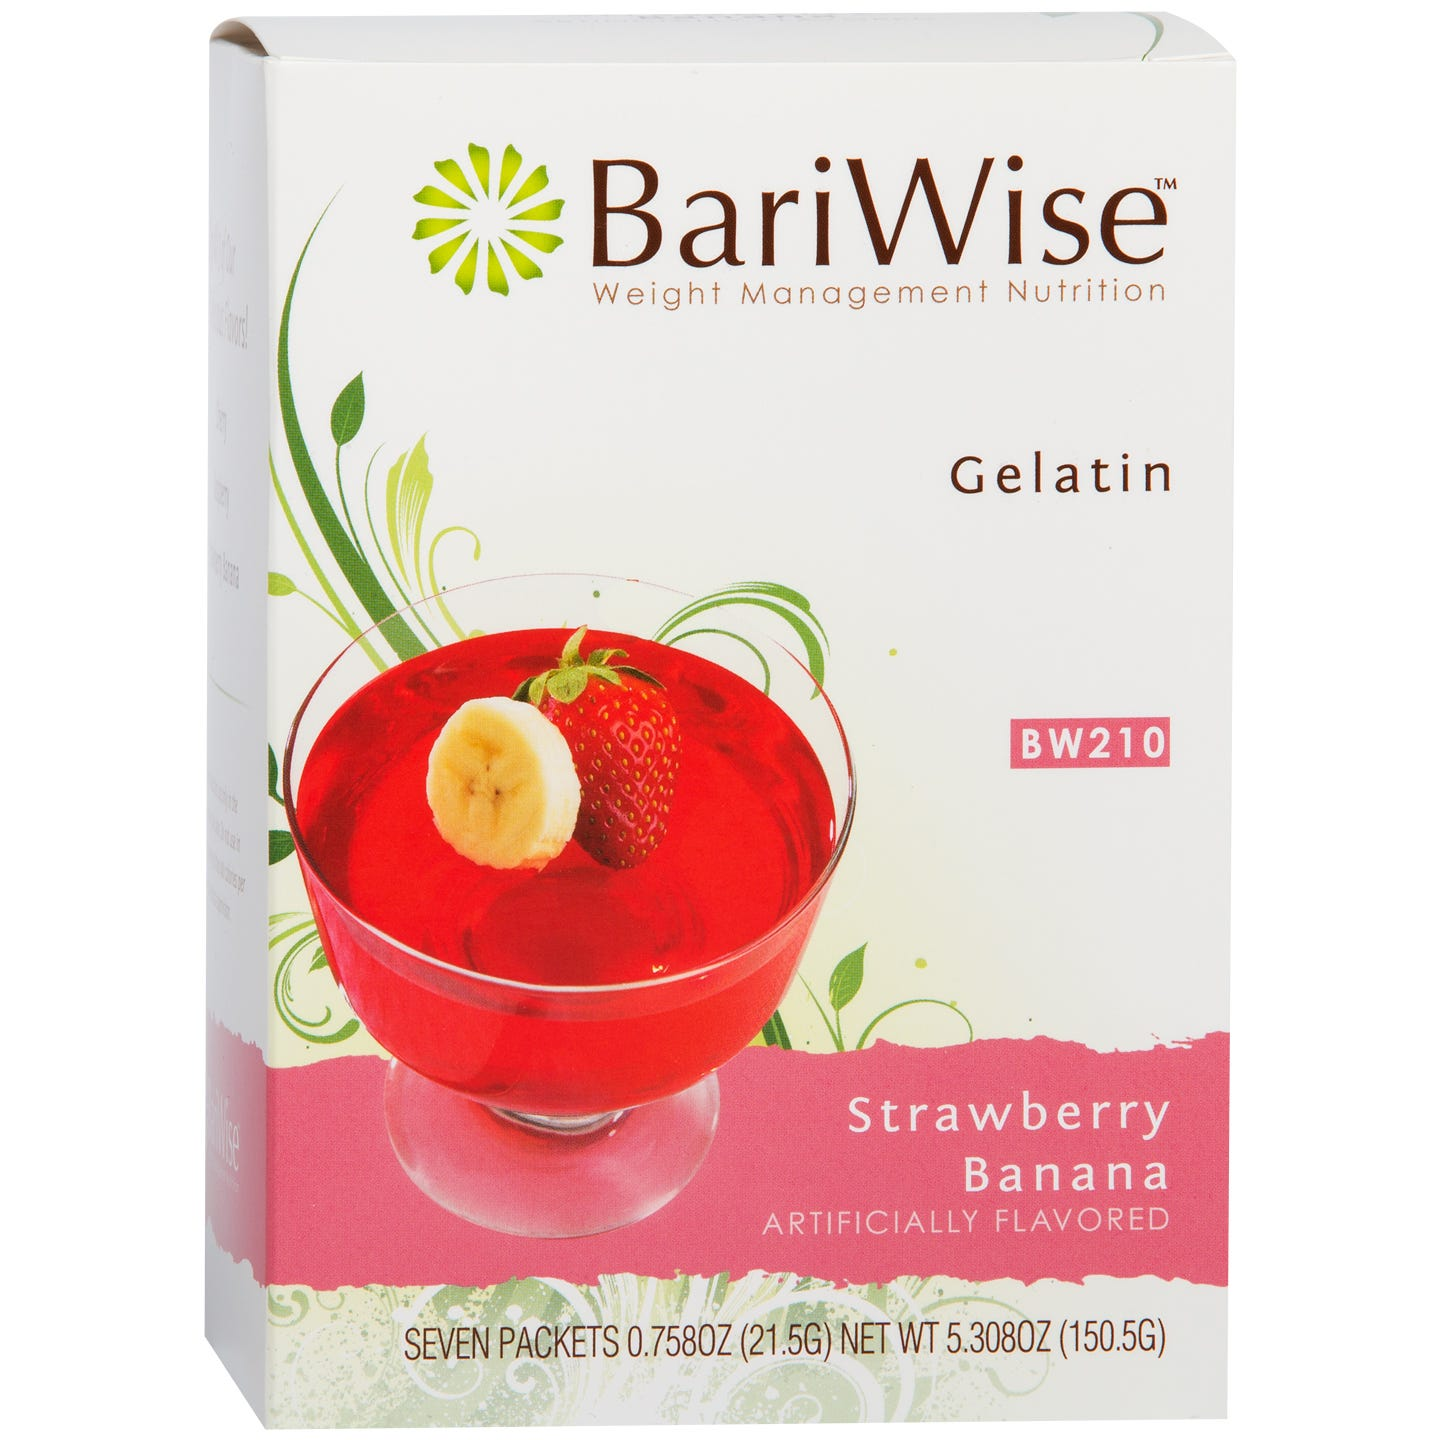 Protein Diet Gelatin Strawberry Banana (7 Ct) - BariWise